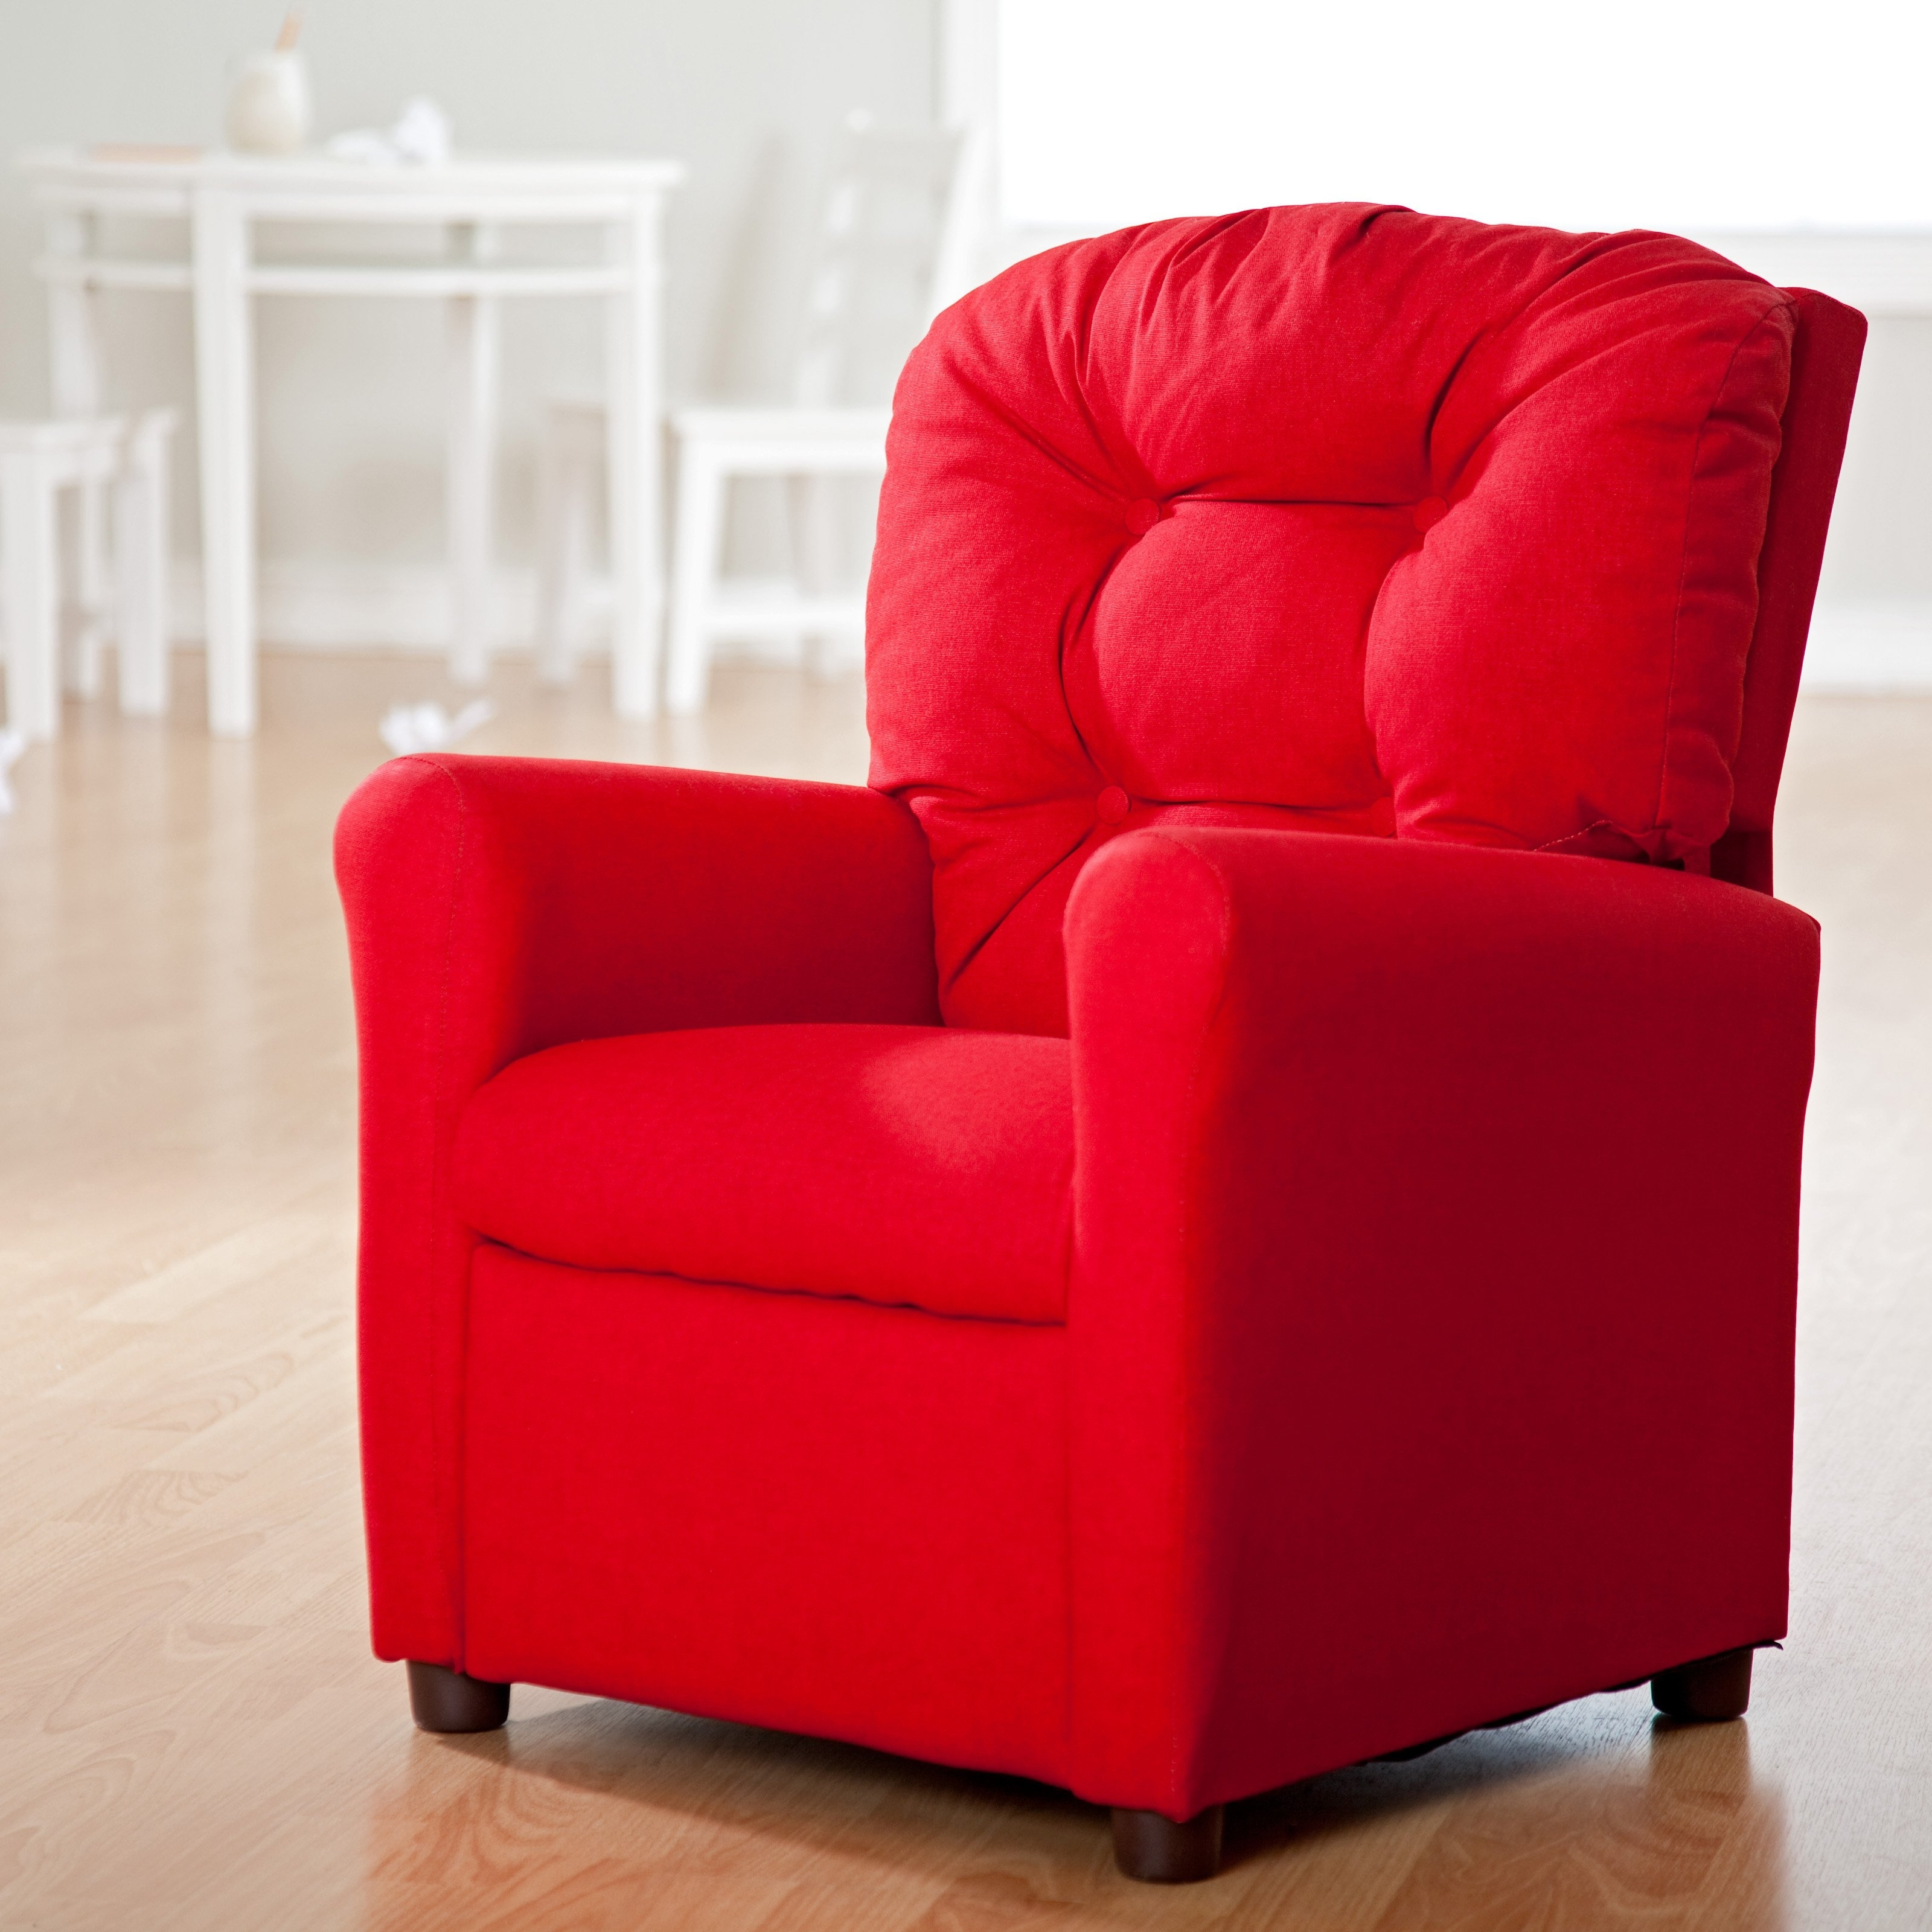 Armchair : Pottery Barn Anywhere Chair Review Kids Sofa Chair Kids Regarding Famous Personalized Kids Chairs And Sofas (View 11 of 15)